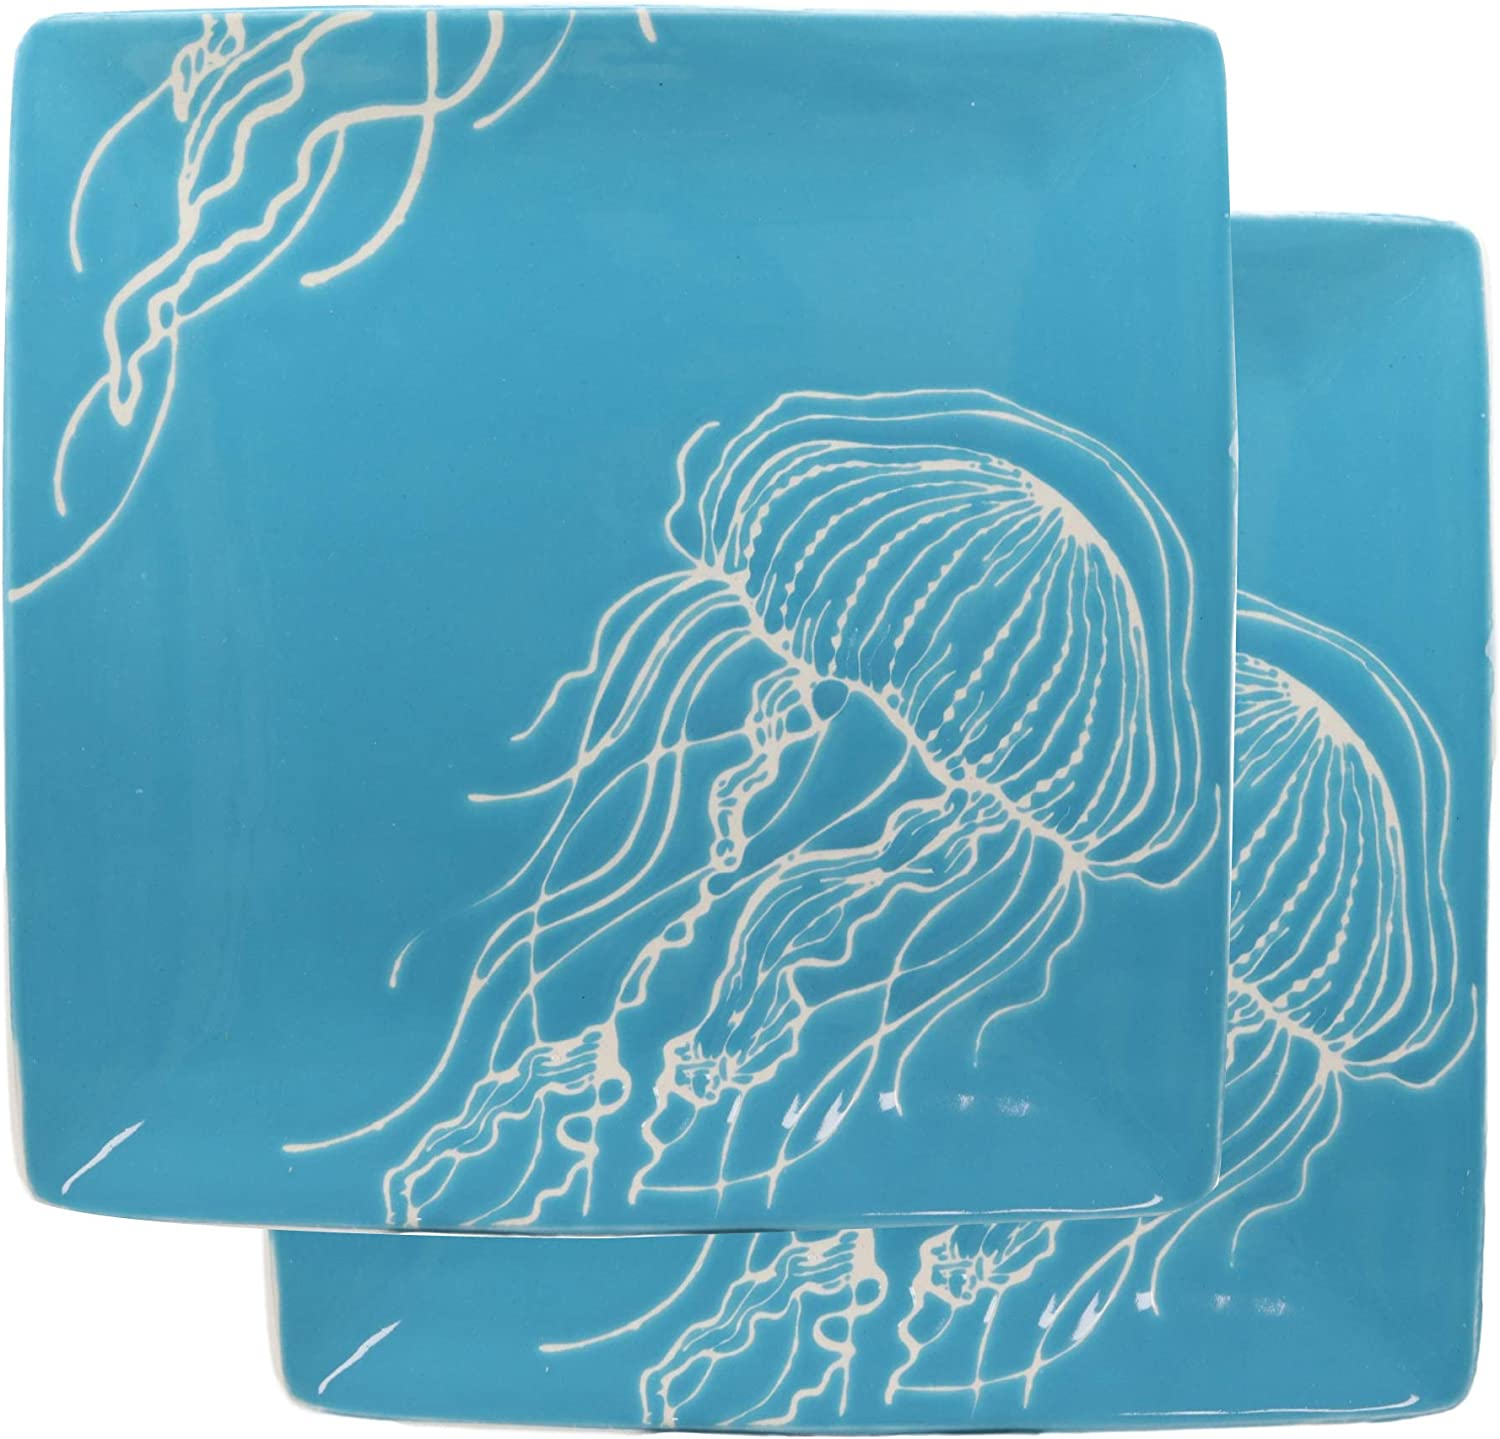 "Ebros Nautical Coastal Ocean Sea Marine Jellyfish Abstract Art Soothing Blue Large Dinner Plate Set of 2 Square 10.75"" Plates Dishwasher Microwave Safe Jelly Fish Dinnerware Dishes"